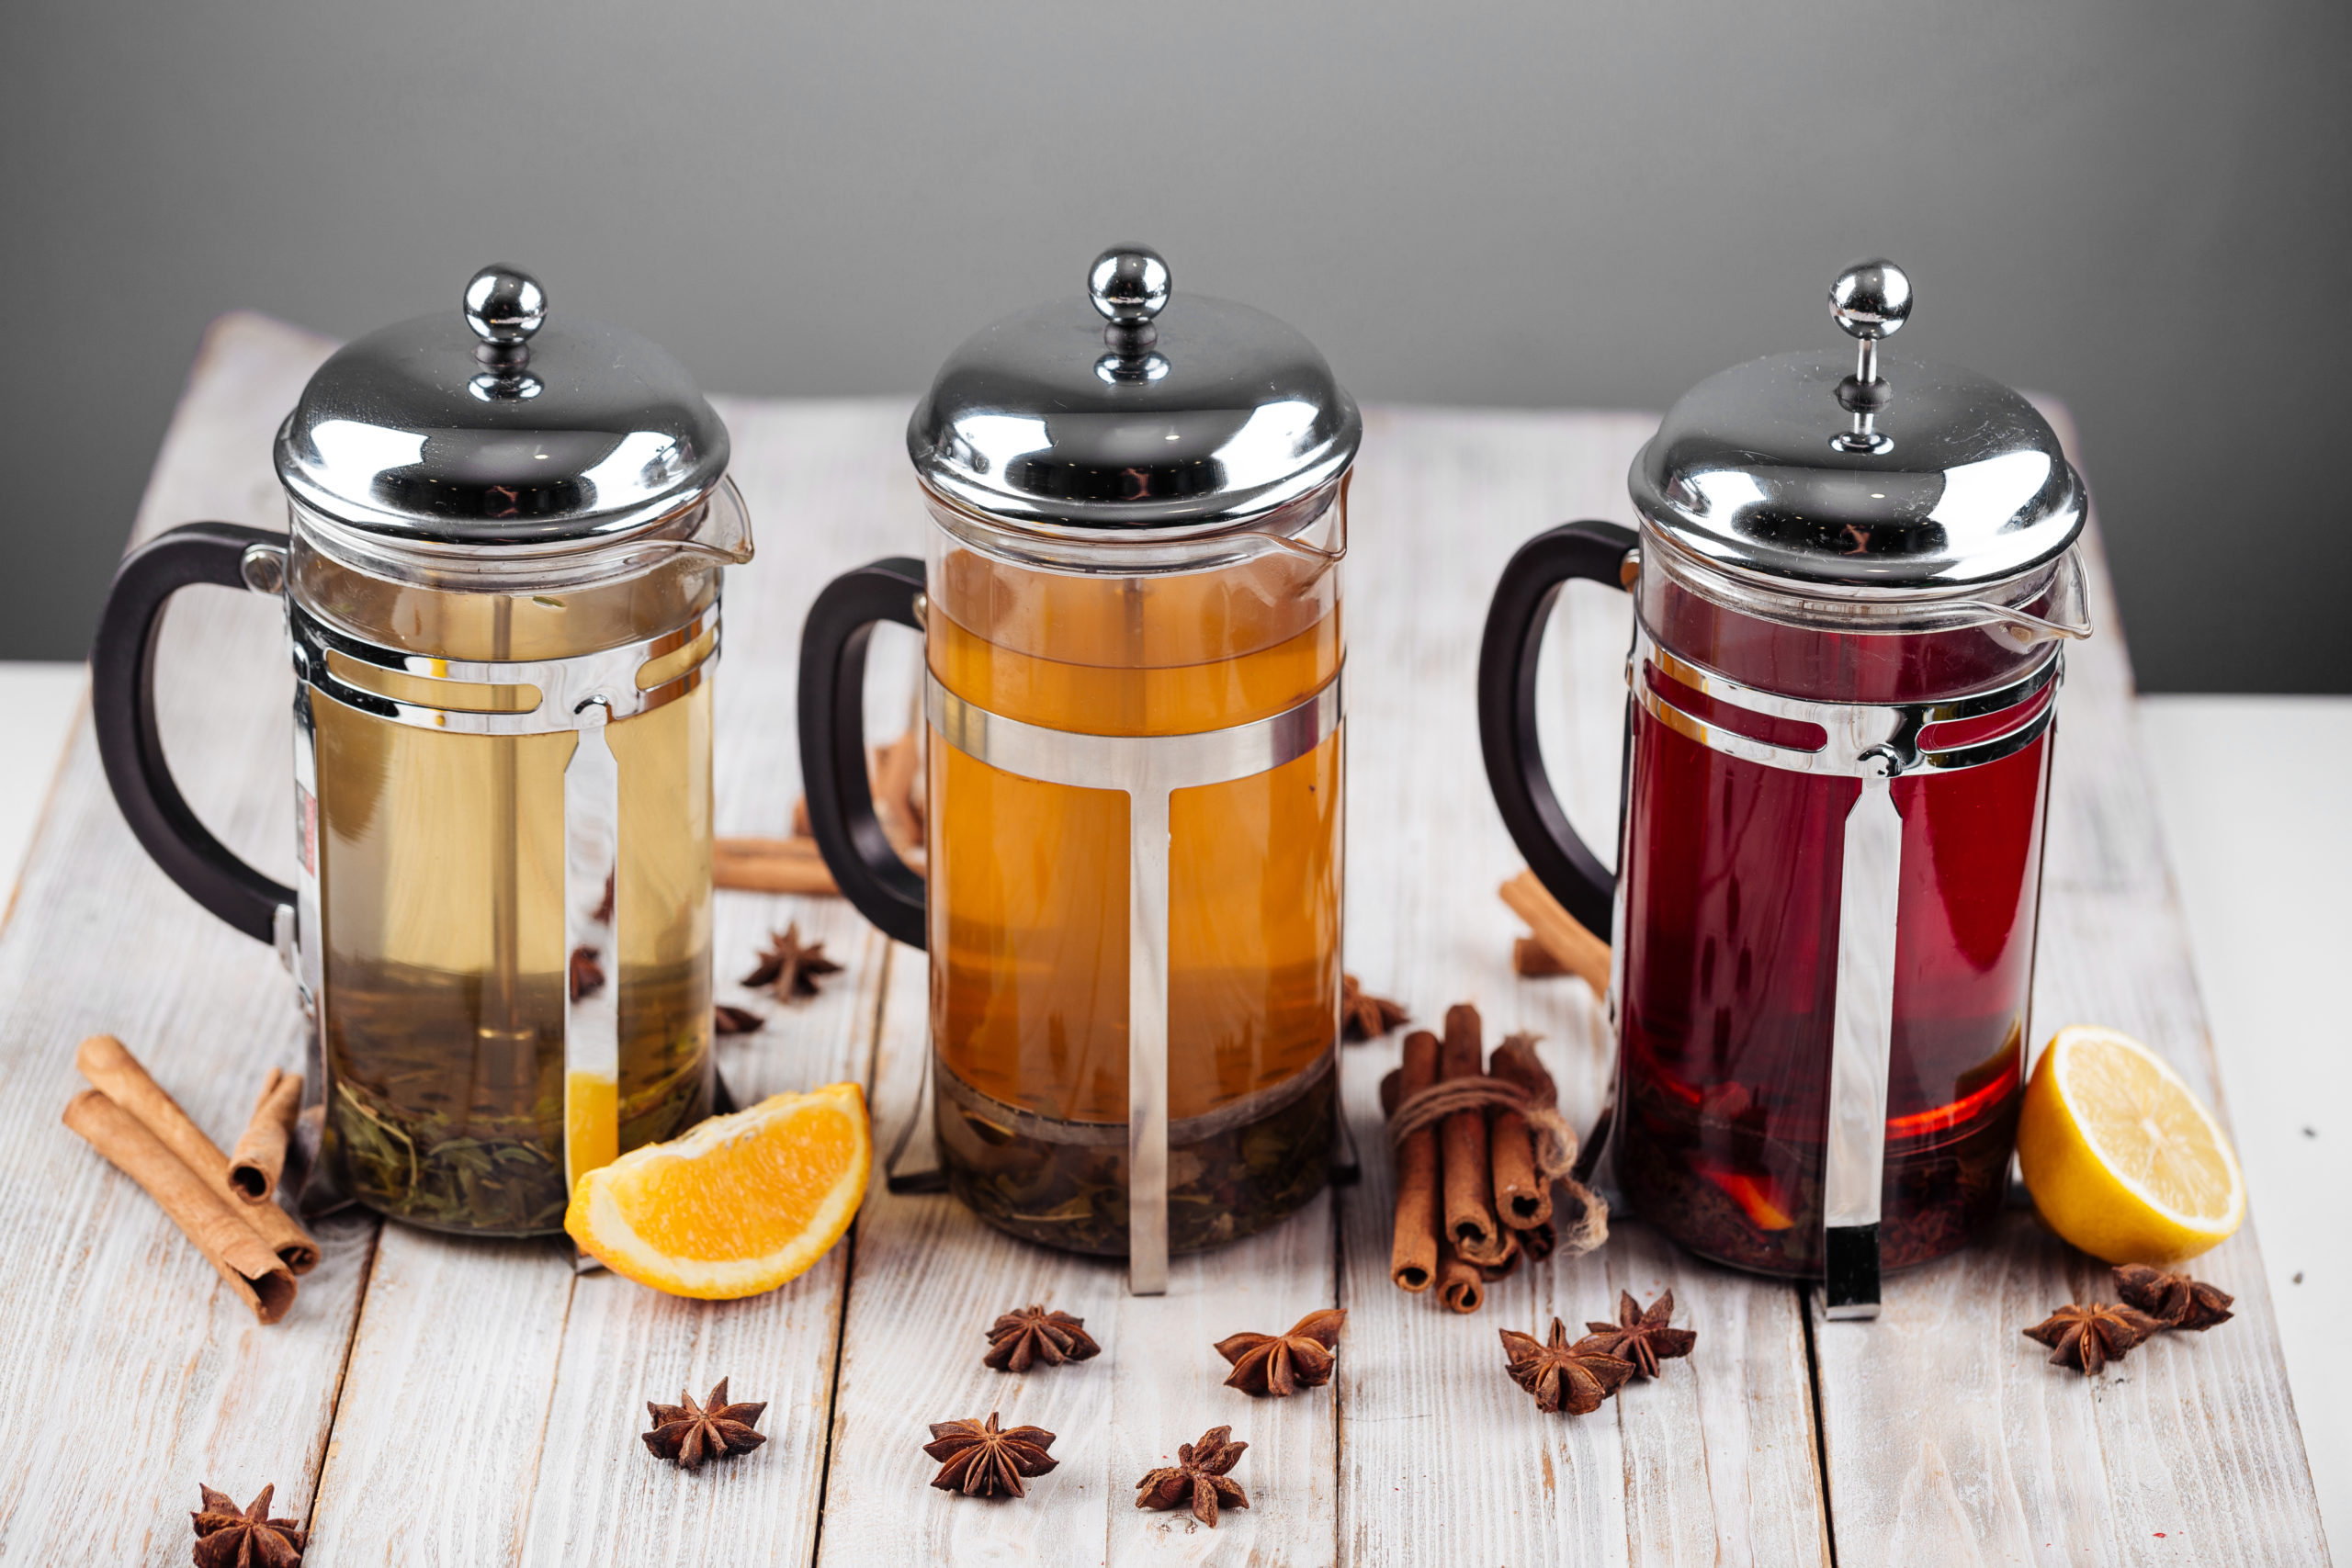 Different fruit teas in french press pots